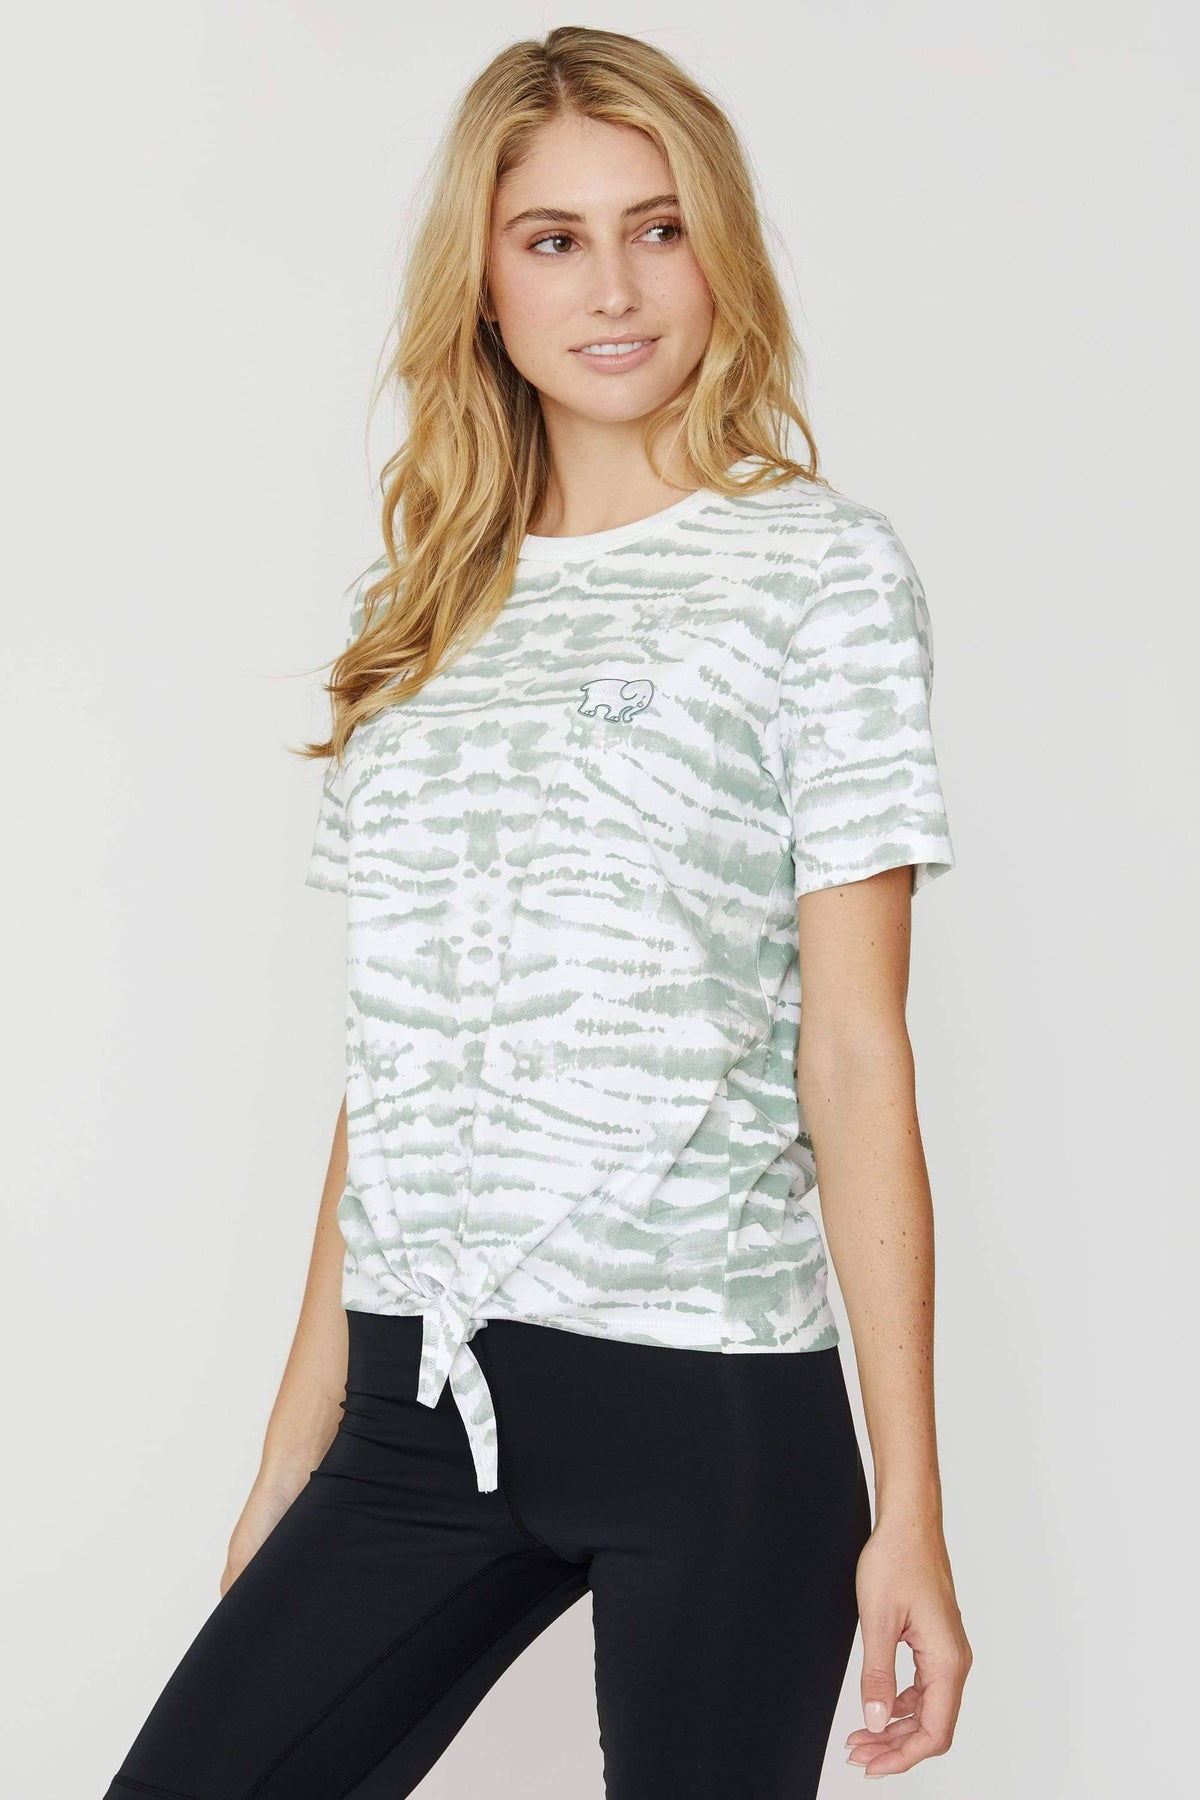 Ivory Ella Women's Short Sleeve Tees Lily Pad Tie Dye Knot-front Tee